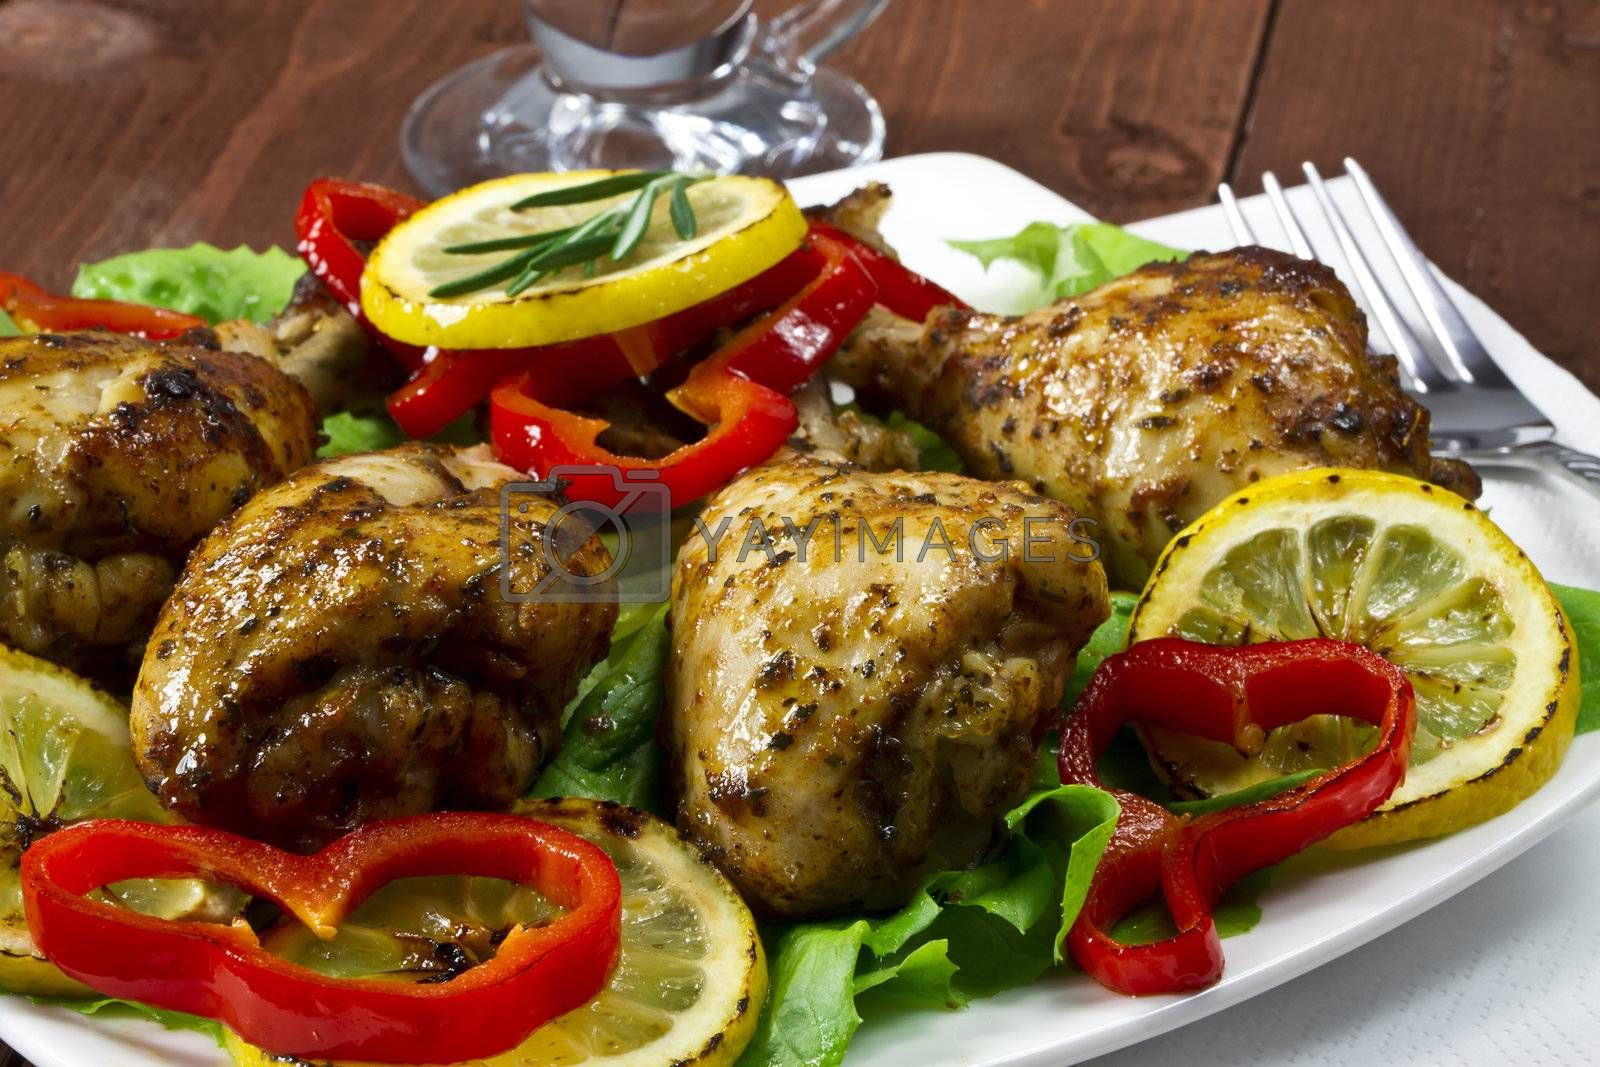 Fried chicken drumsticks with lemon and red peppers